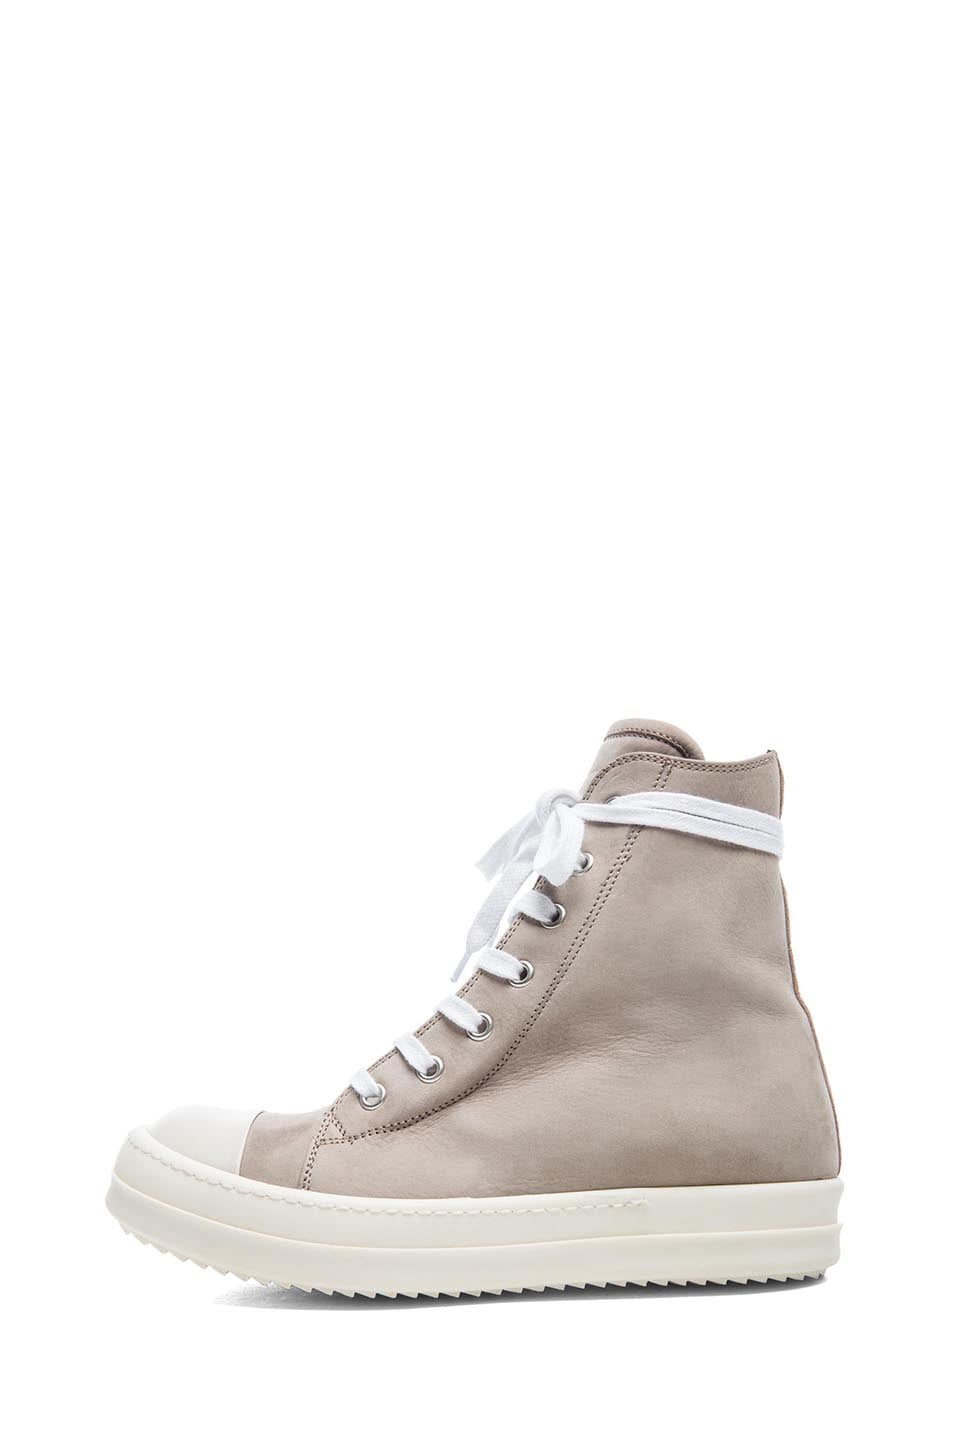 Image 1 of Rick Owens Leather Sneakers in Beige & White